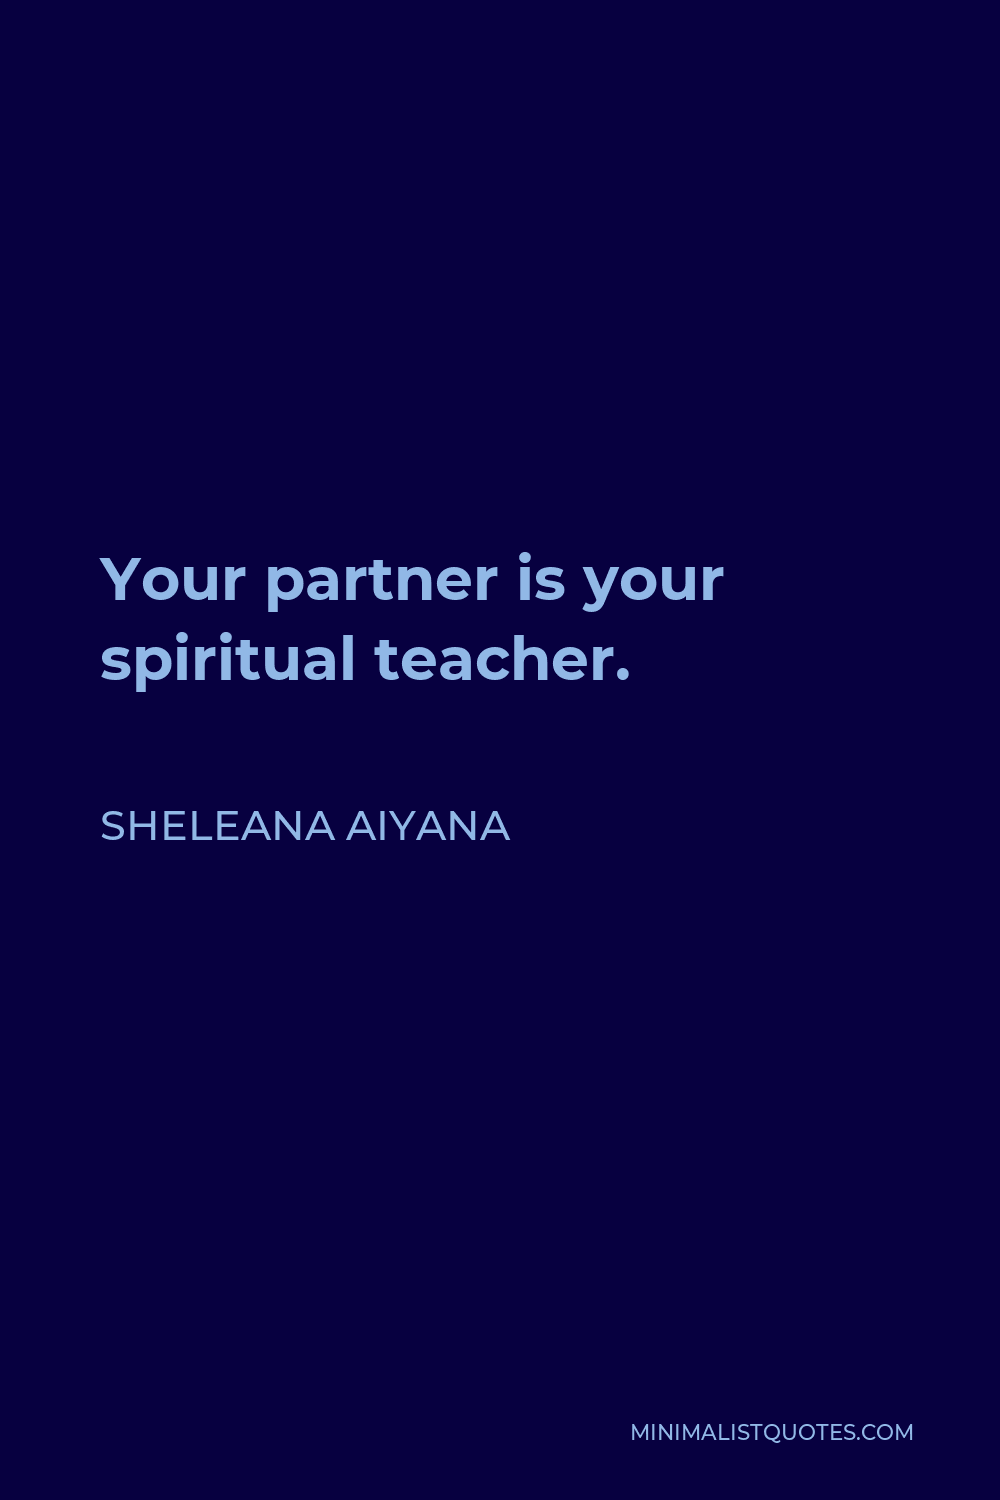 Sheleana Aiyana Quote - Your partner is your spiritual teacher.